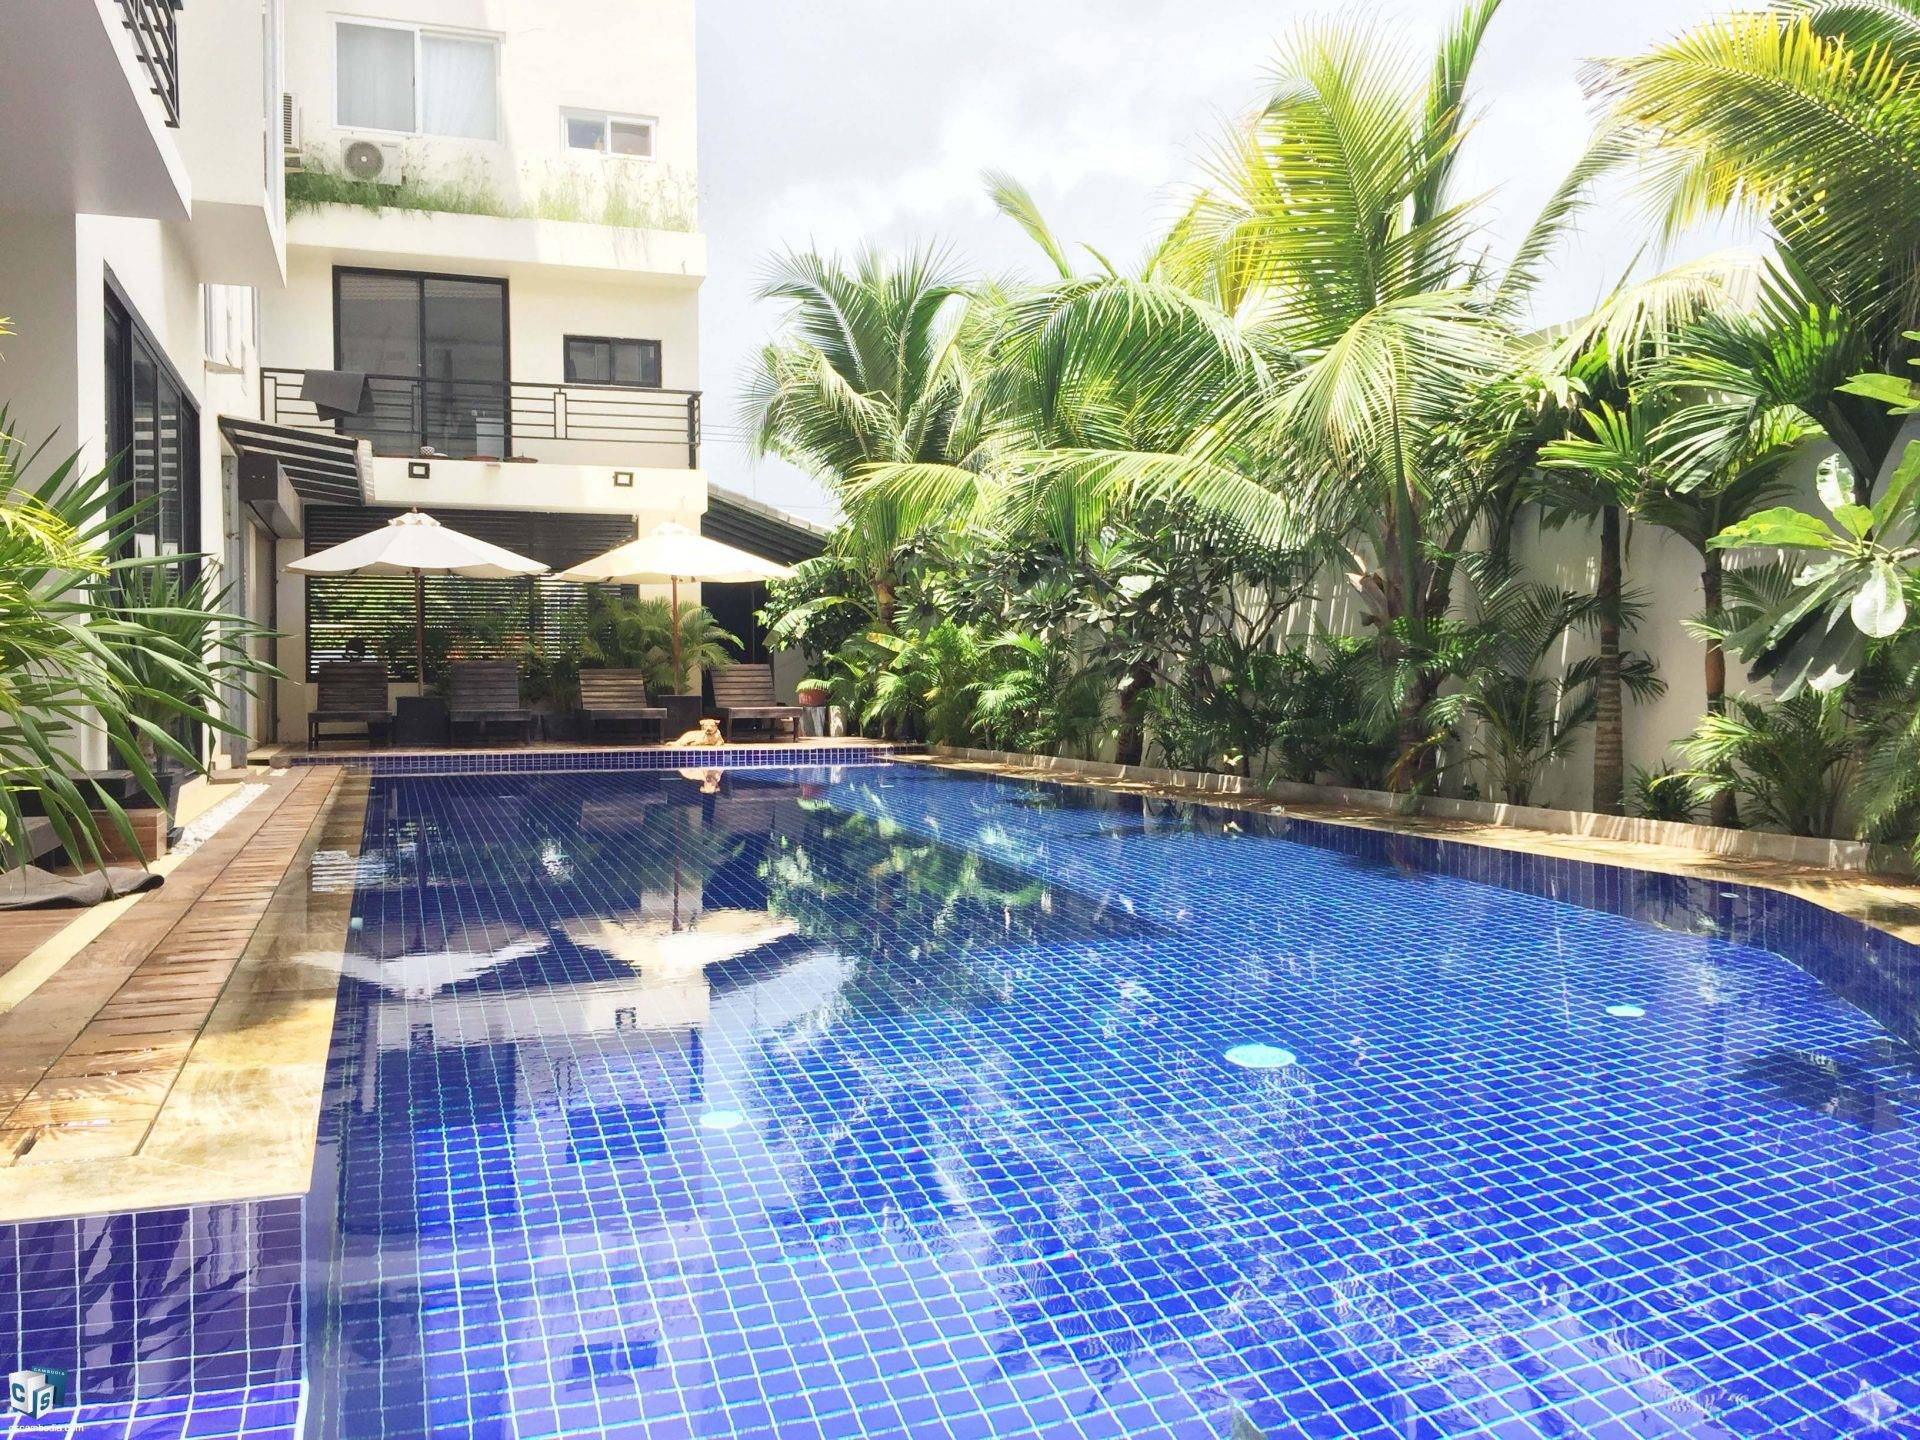 Luxury Studio Apartment with pool – EXCELLENT VALUE!! – For Rent – Kruos Village – Siem Reap